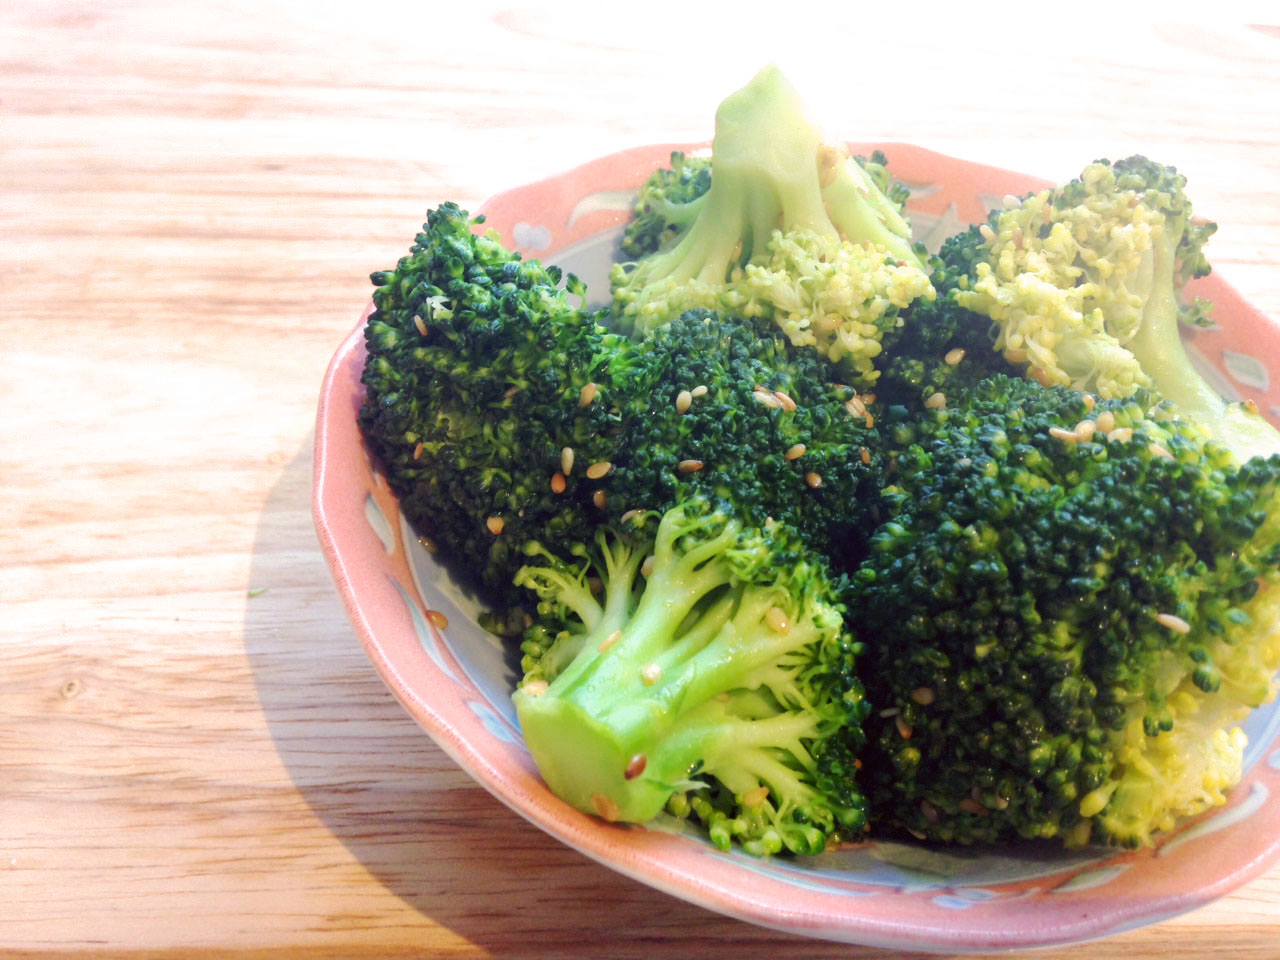 broccoli with sesame seeds in a bowl in wooden table